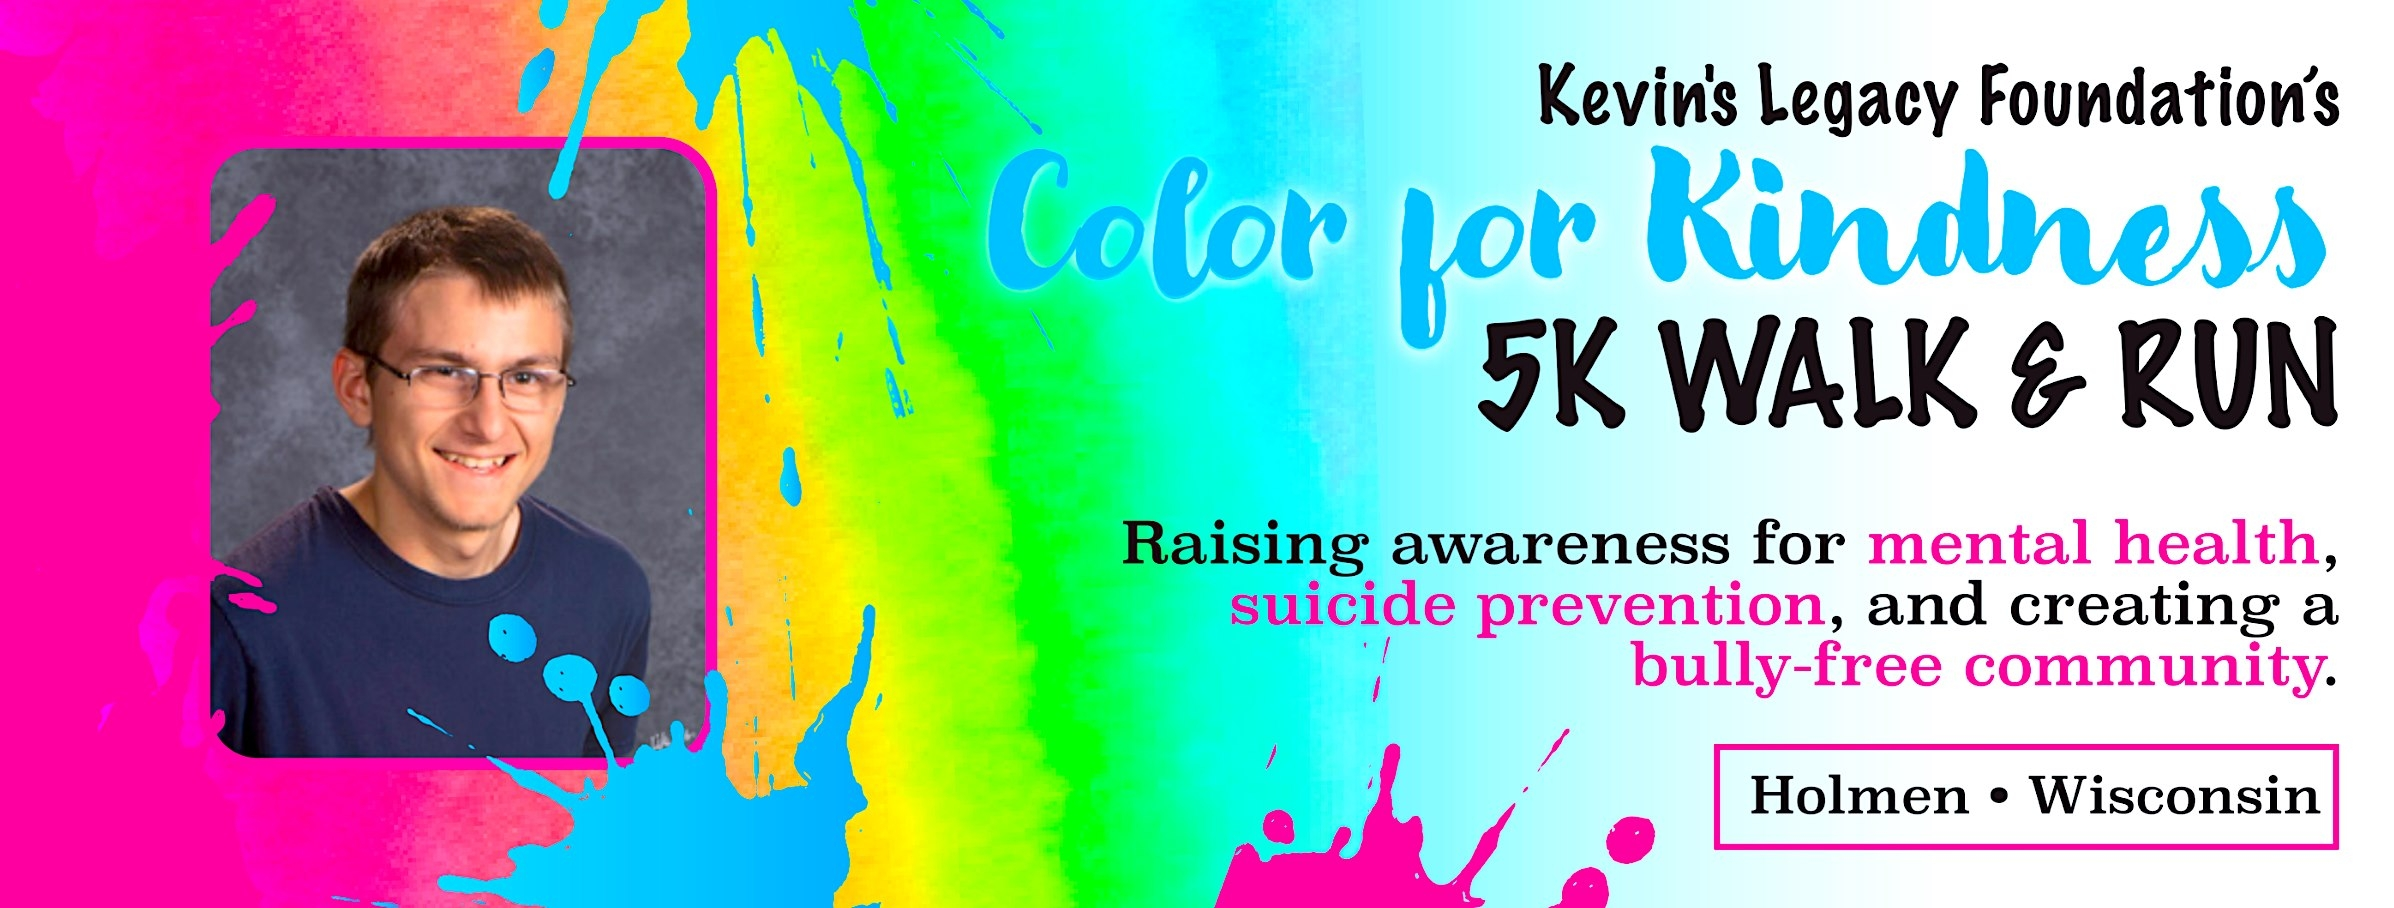 Color for Kindness: Suicide Prevention and Awareness Color Walk/Run Sponsored by Kevin's Legacy Foundation